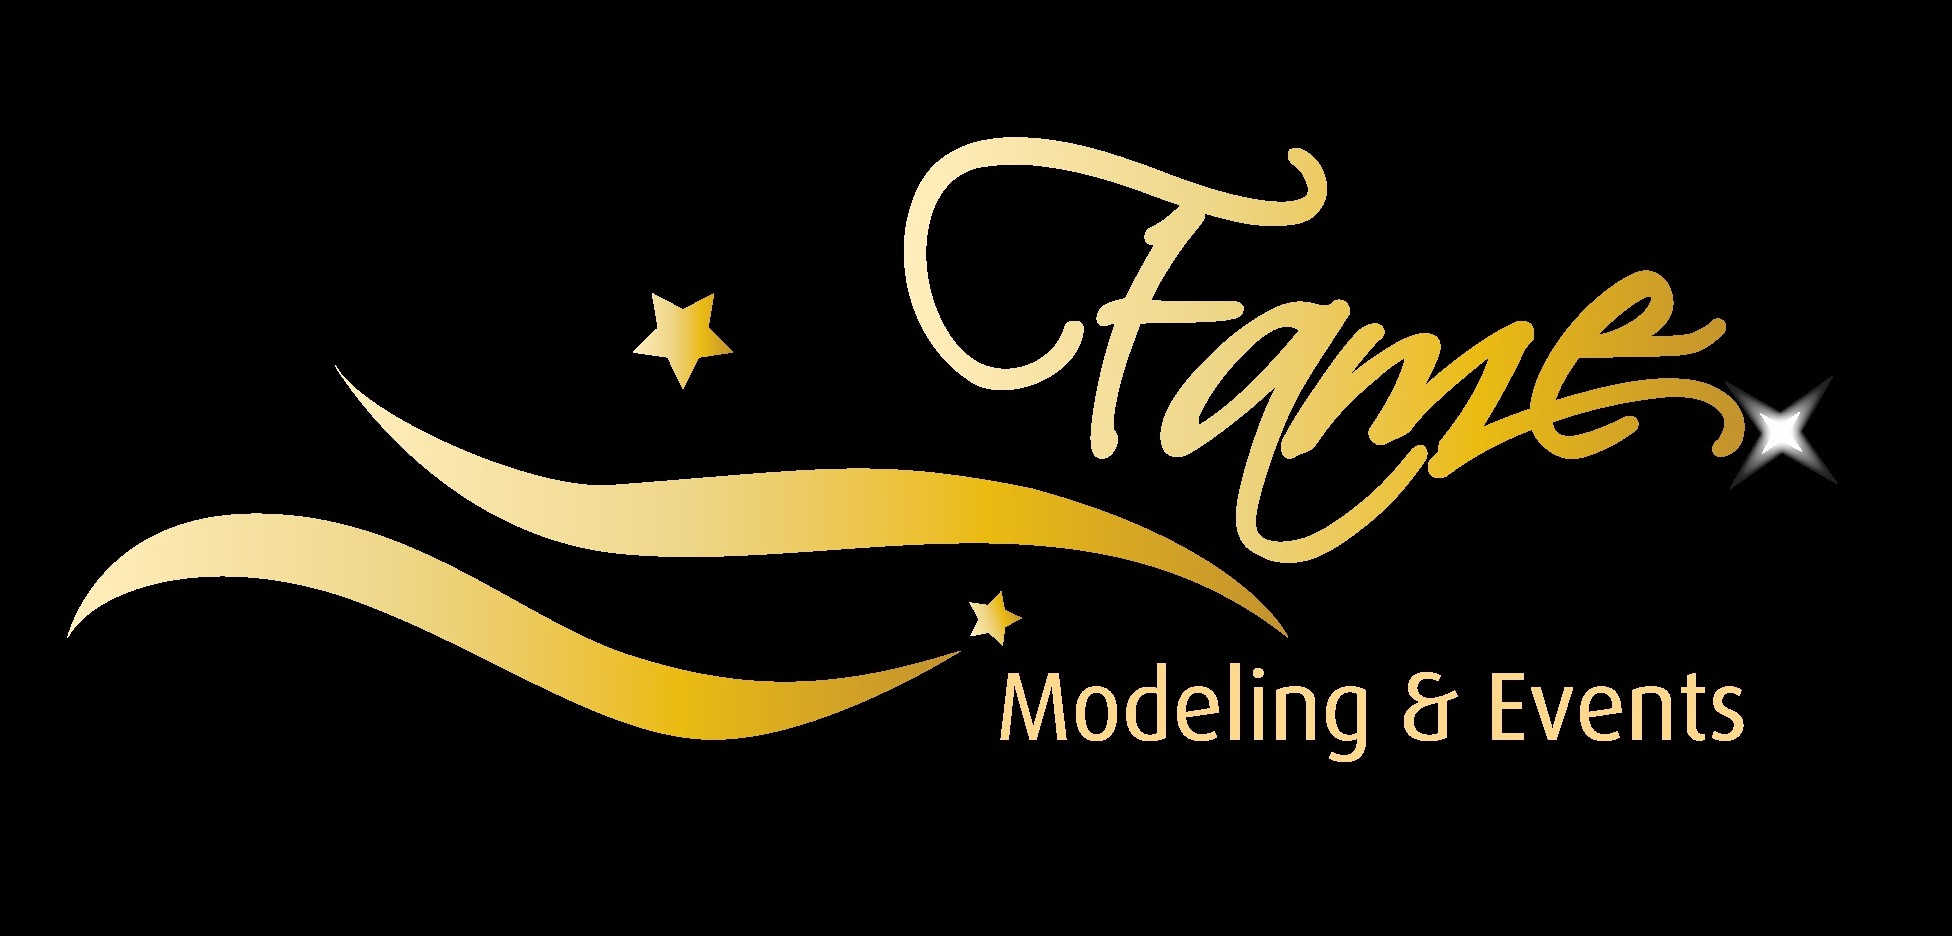 Dubai Modeling Agencies